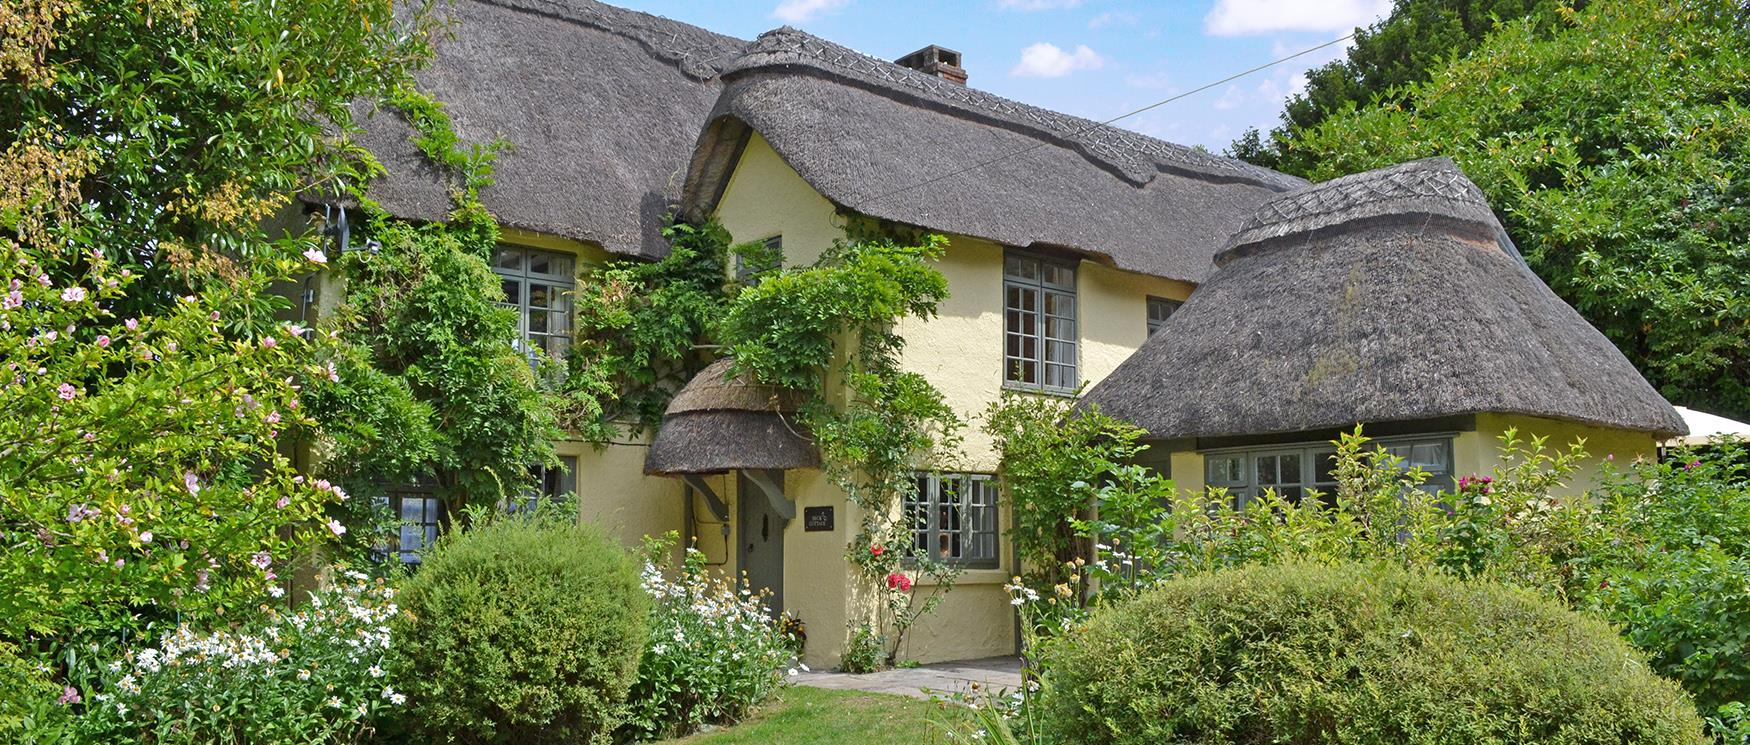 Holiday Cottages in the Countryside